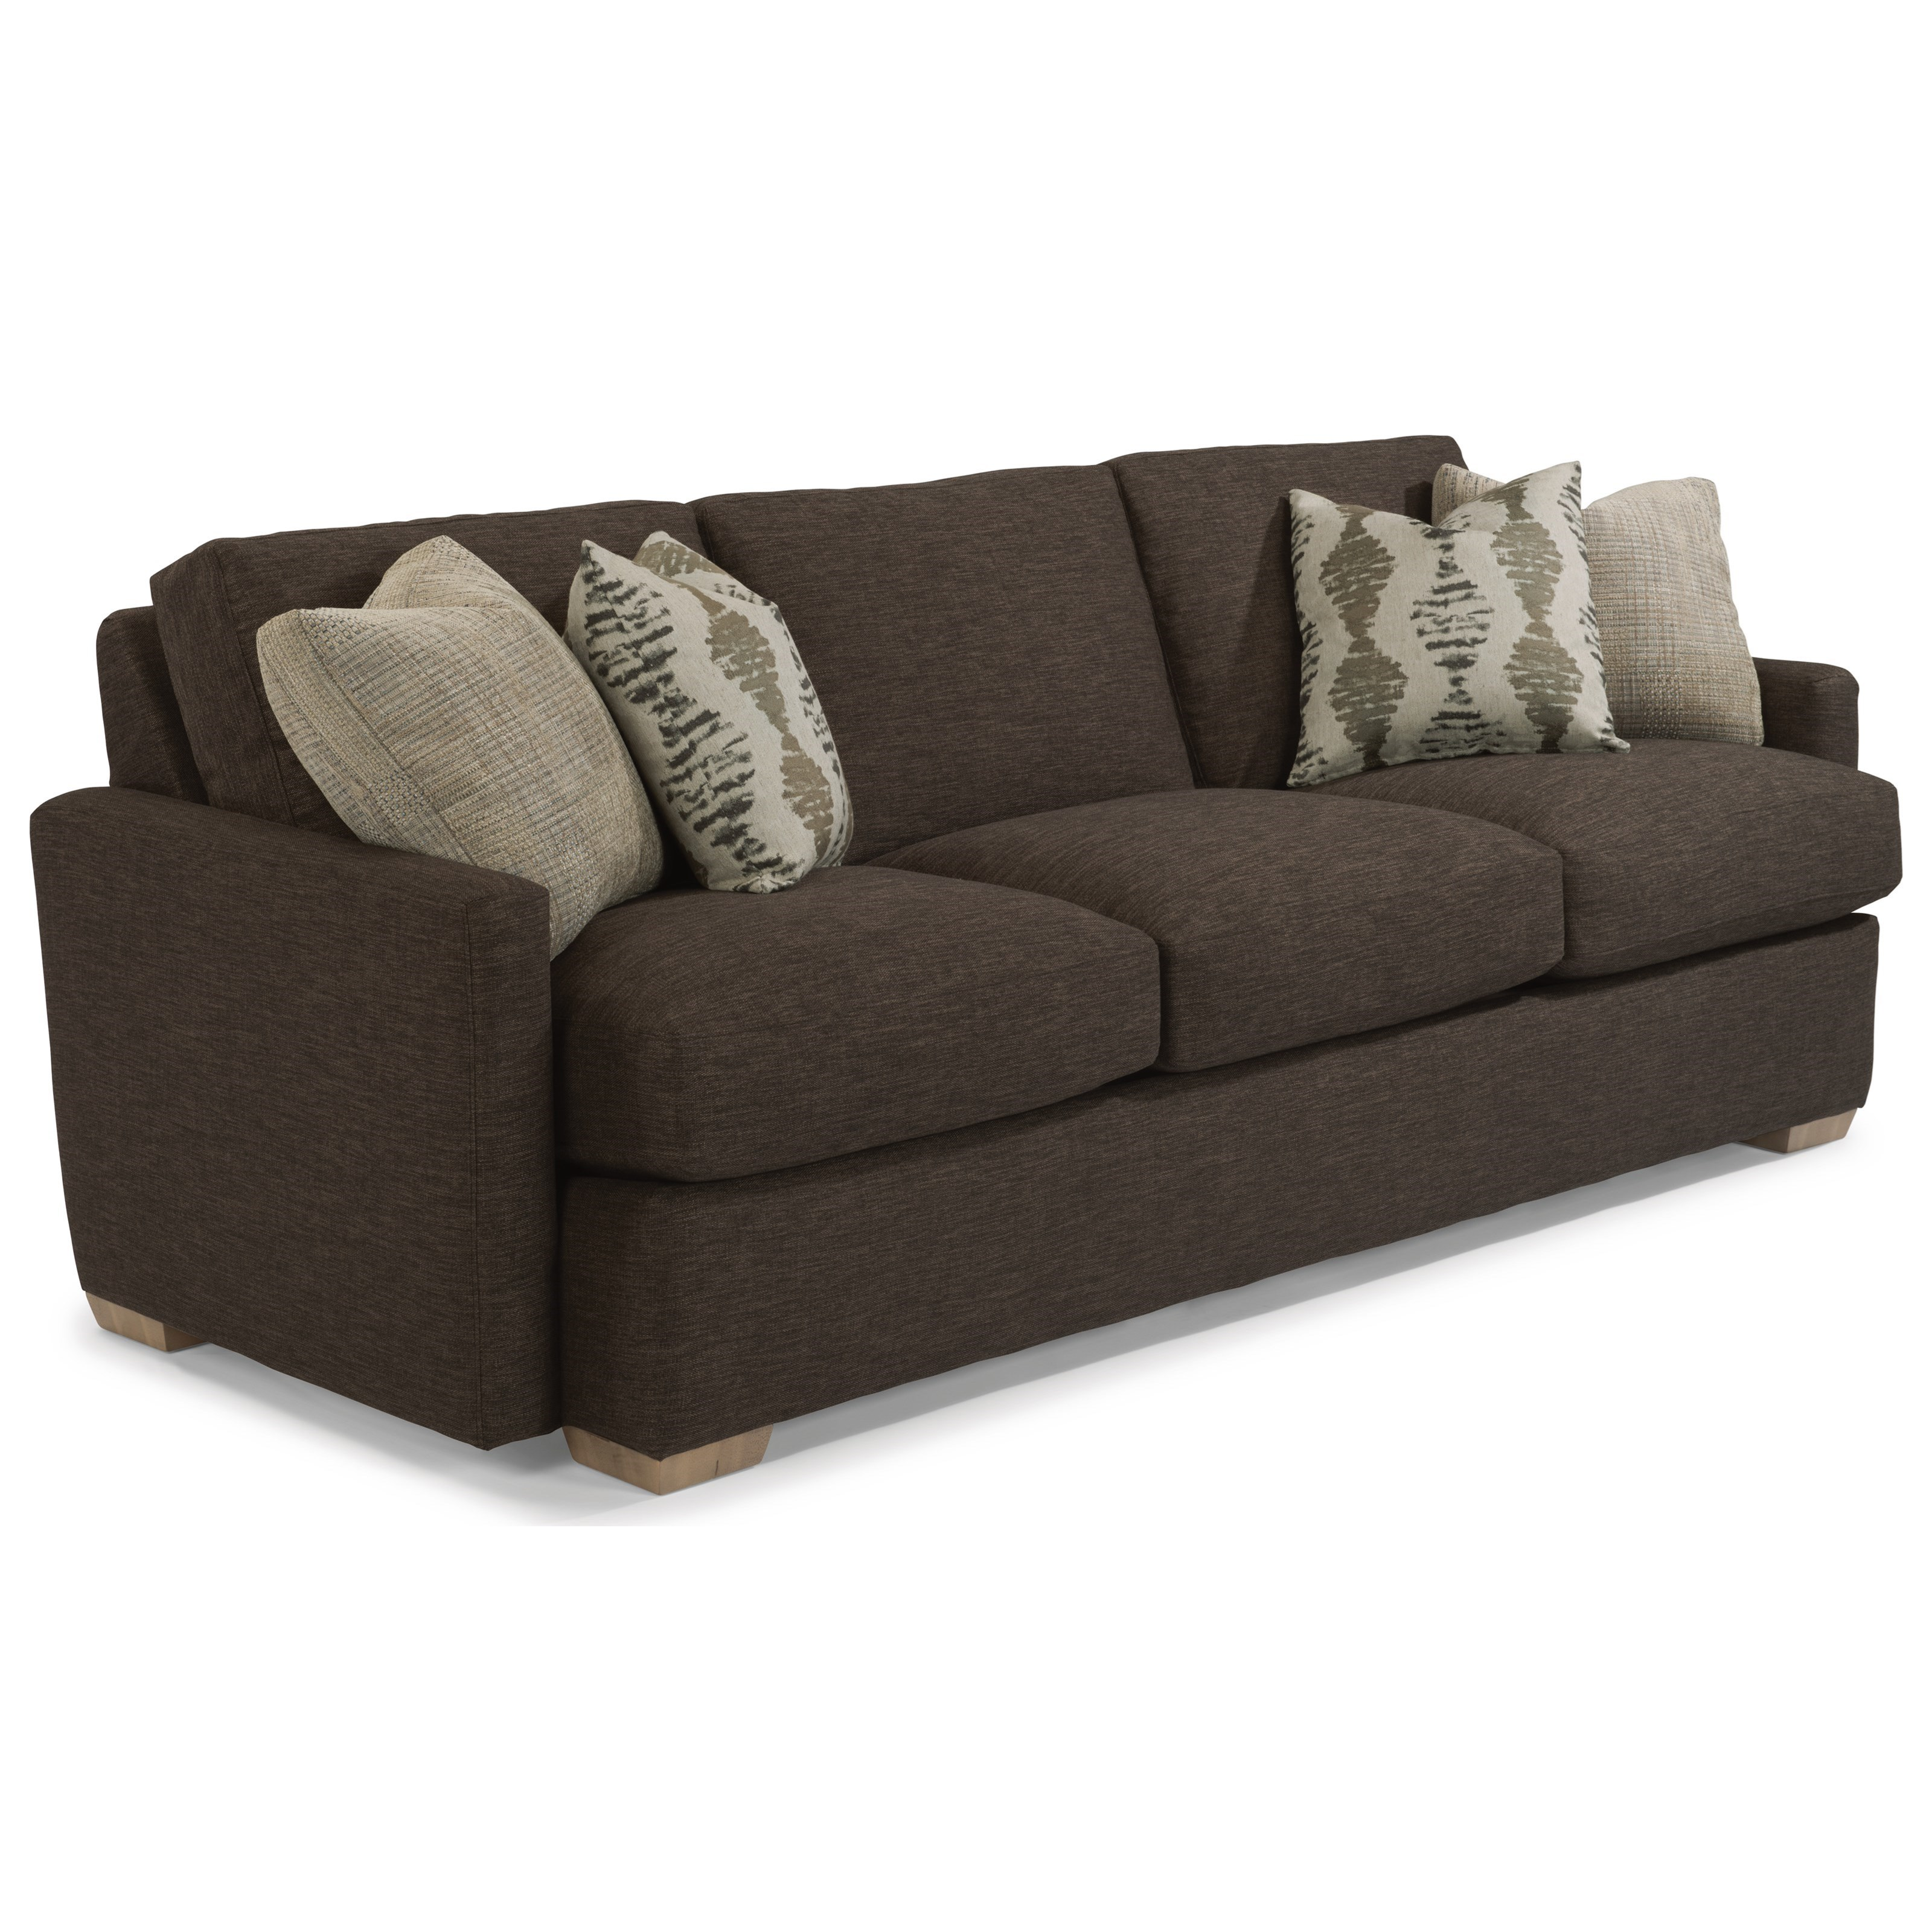 Flexsteel Michelle Sofa  - Item Number: 7906-31